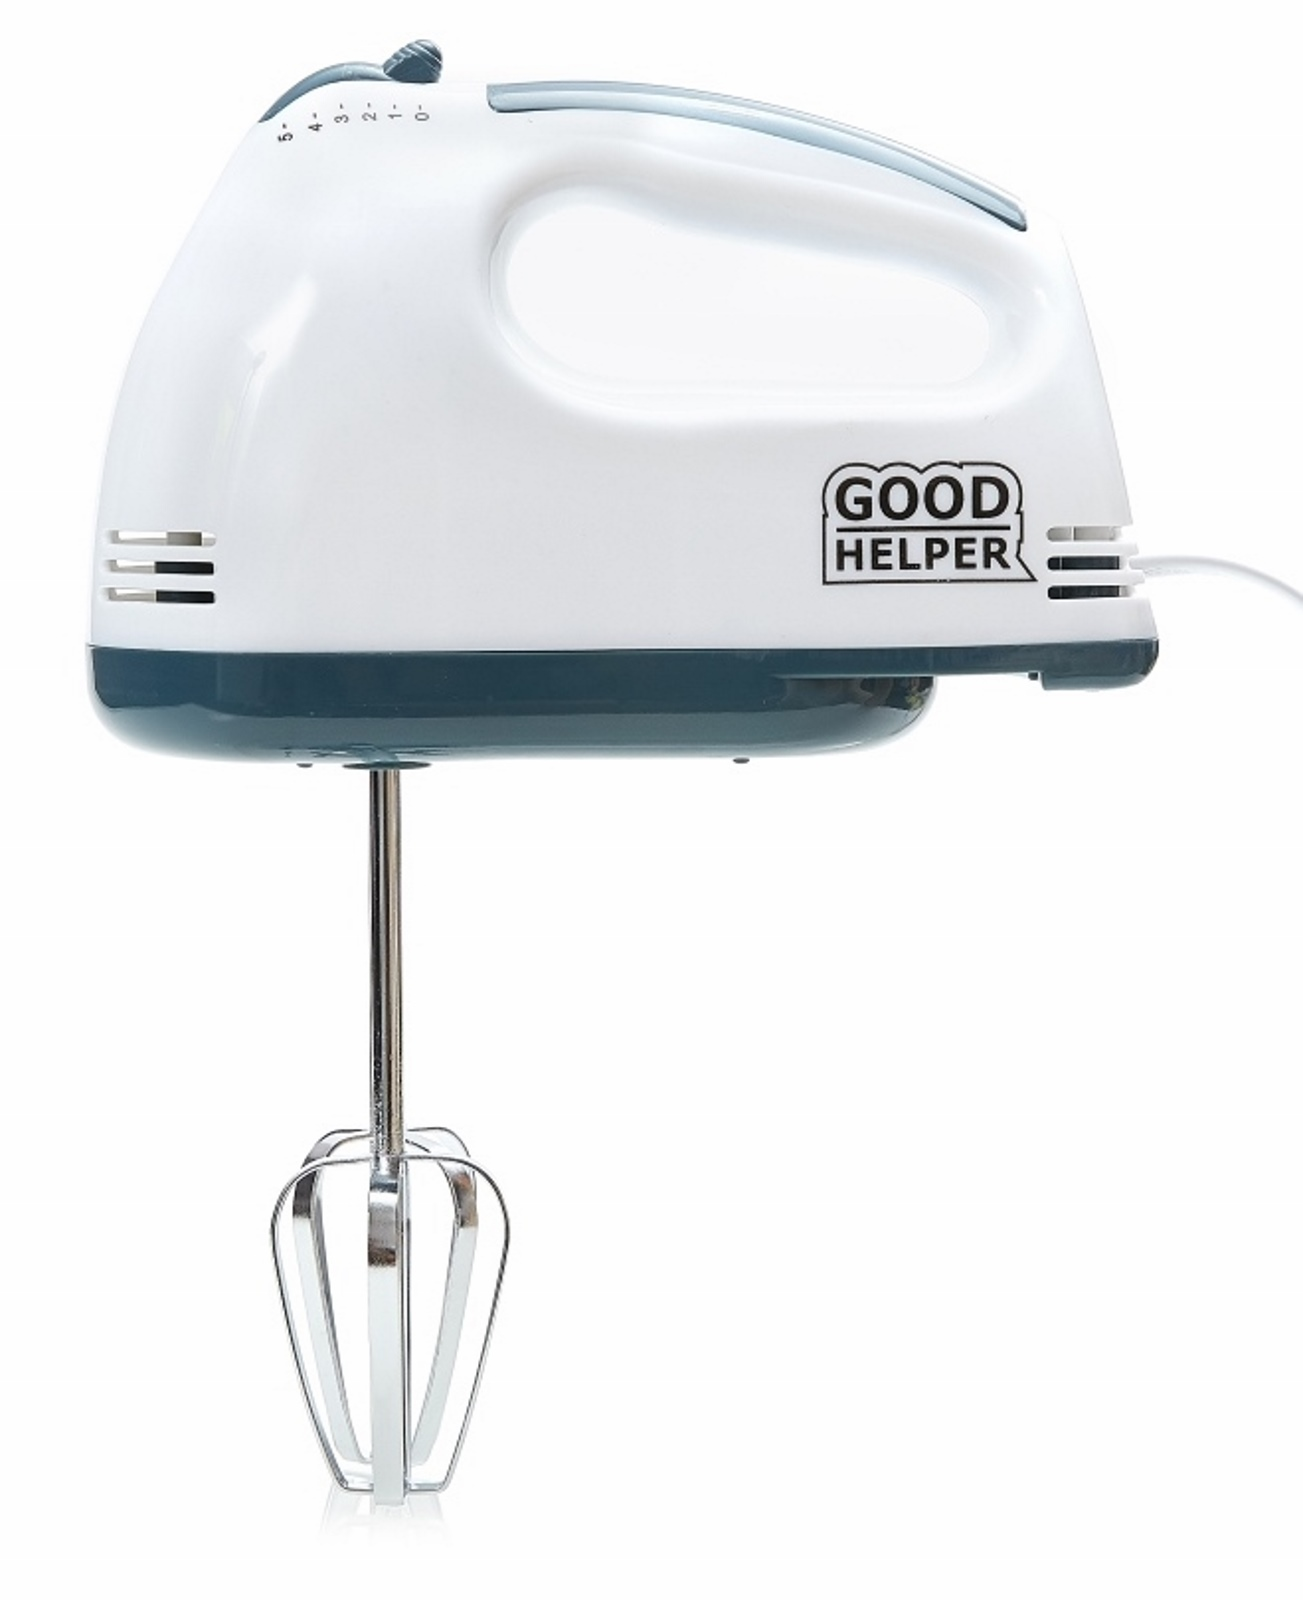 Миксер GOODHELPER Миксер GOODHELPER НМ371 , HM371